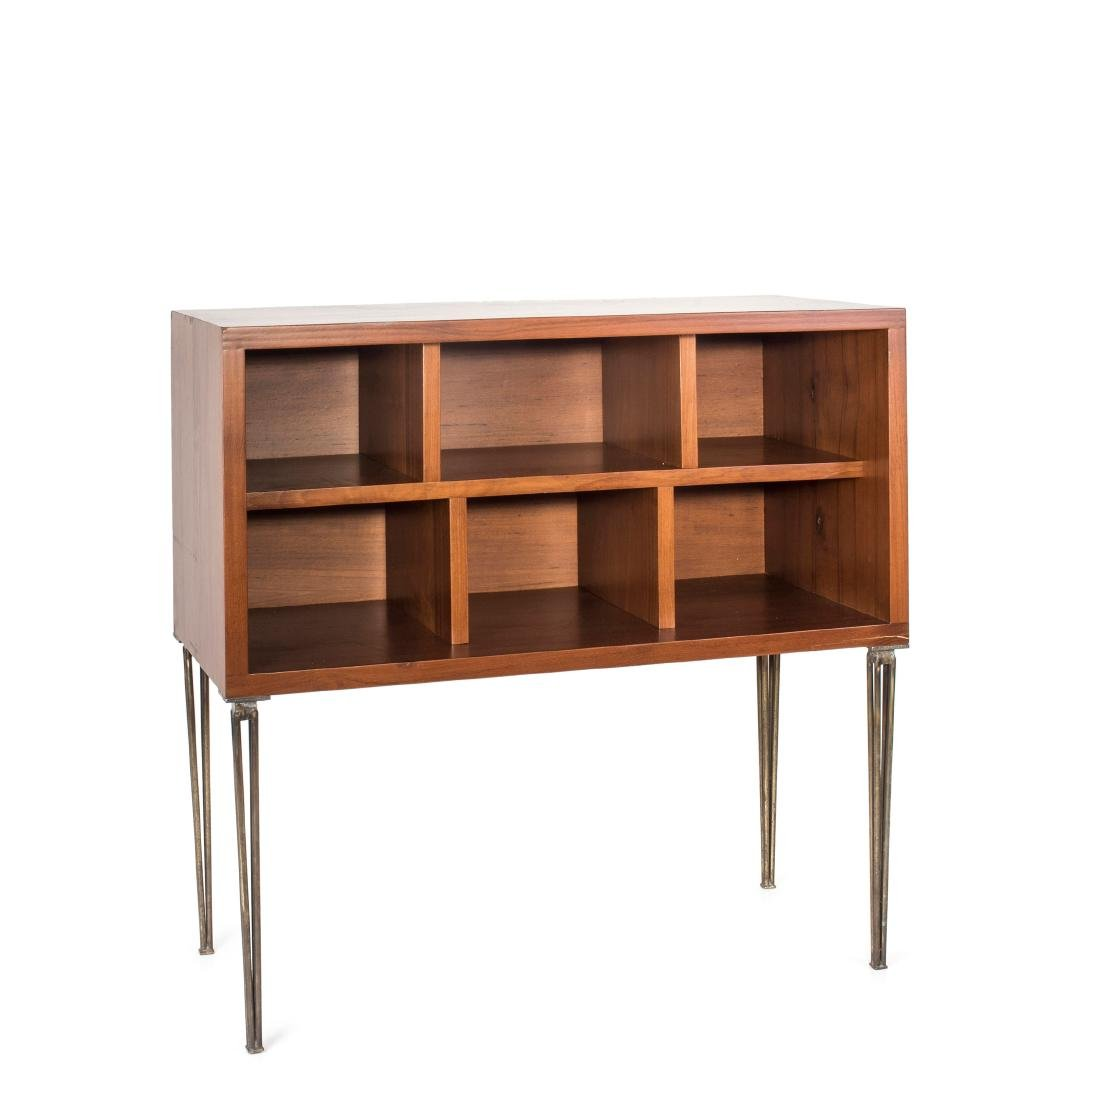 Console table with shelves, c. 1960